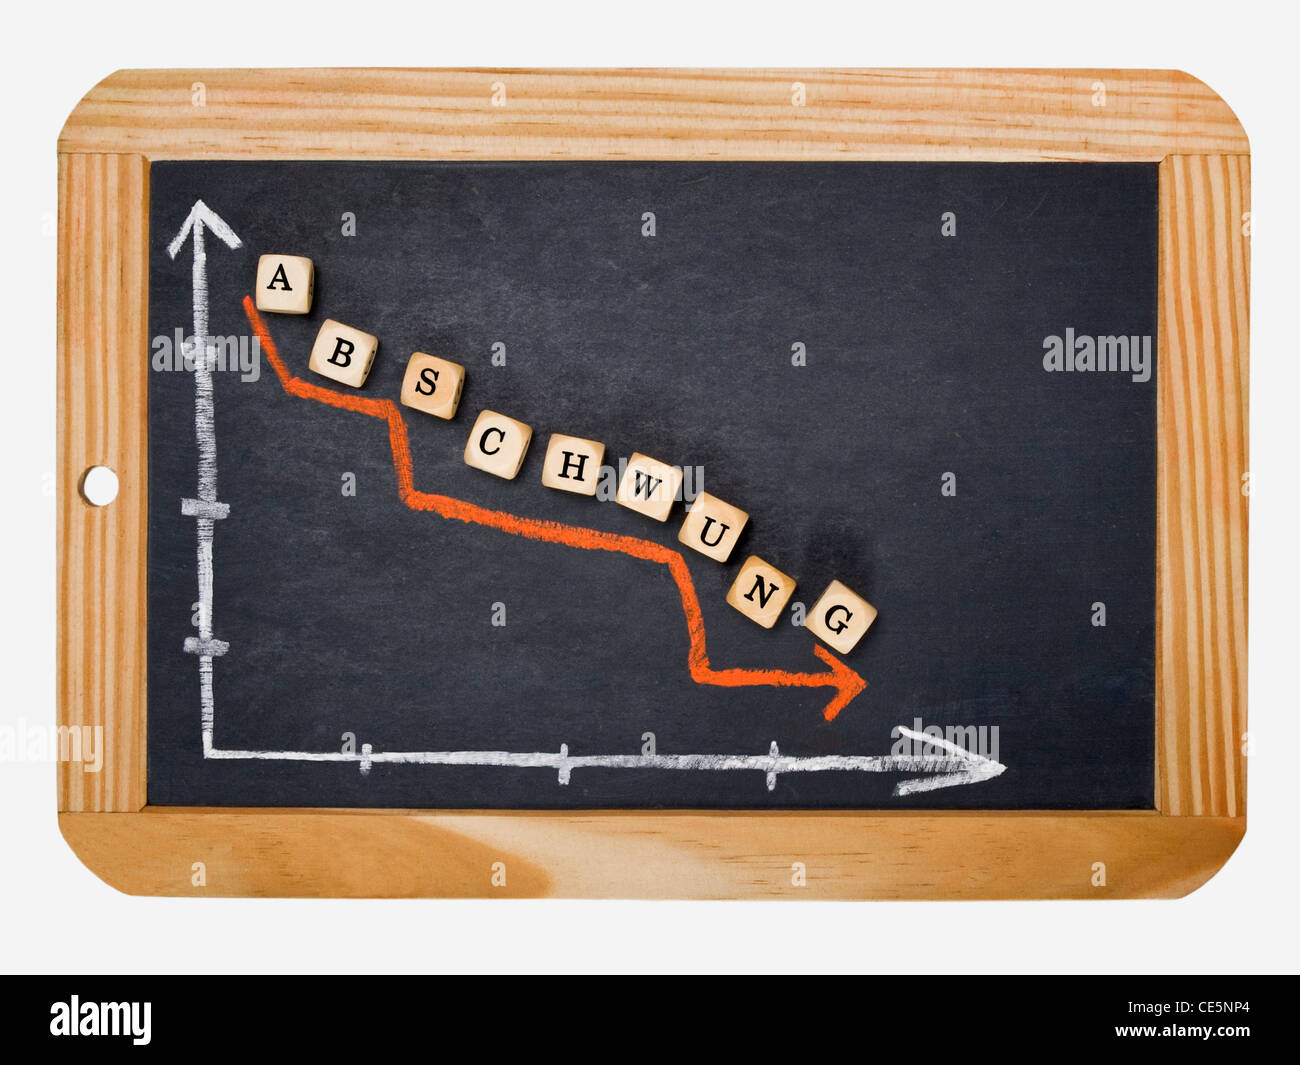 Detail photo of a slate, a chart with an declined curve on this, alongside are cubes that form the word 'Downturn' - Stock Image